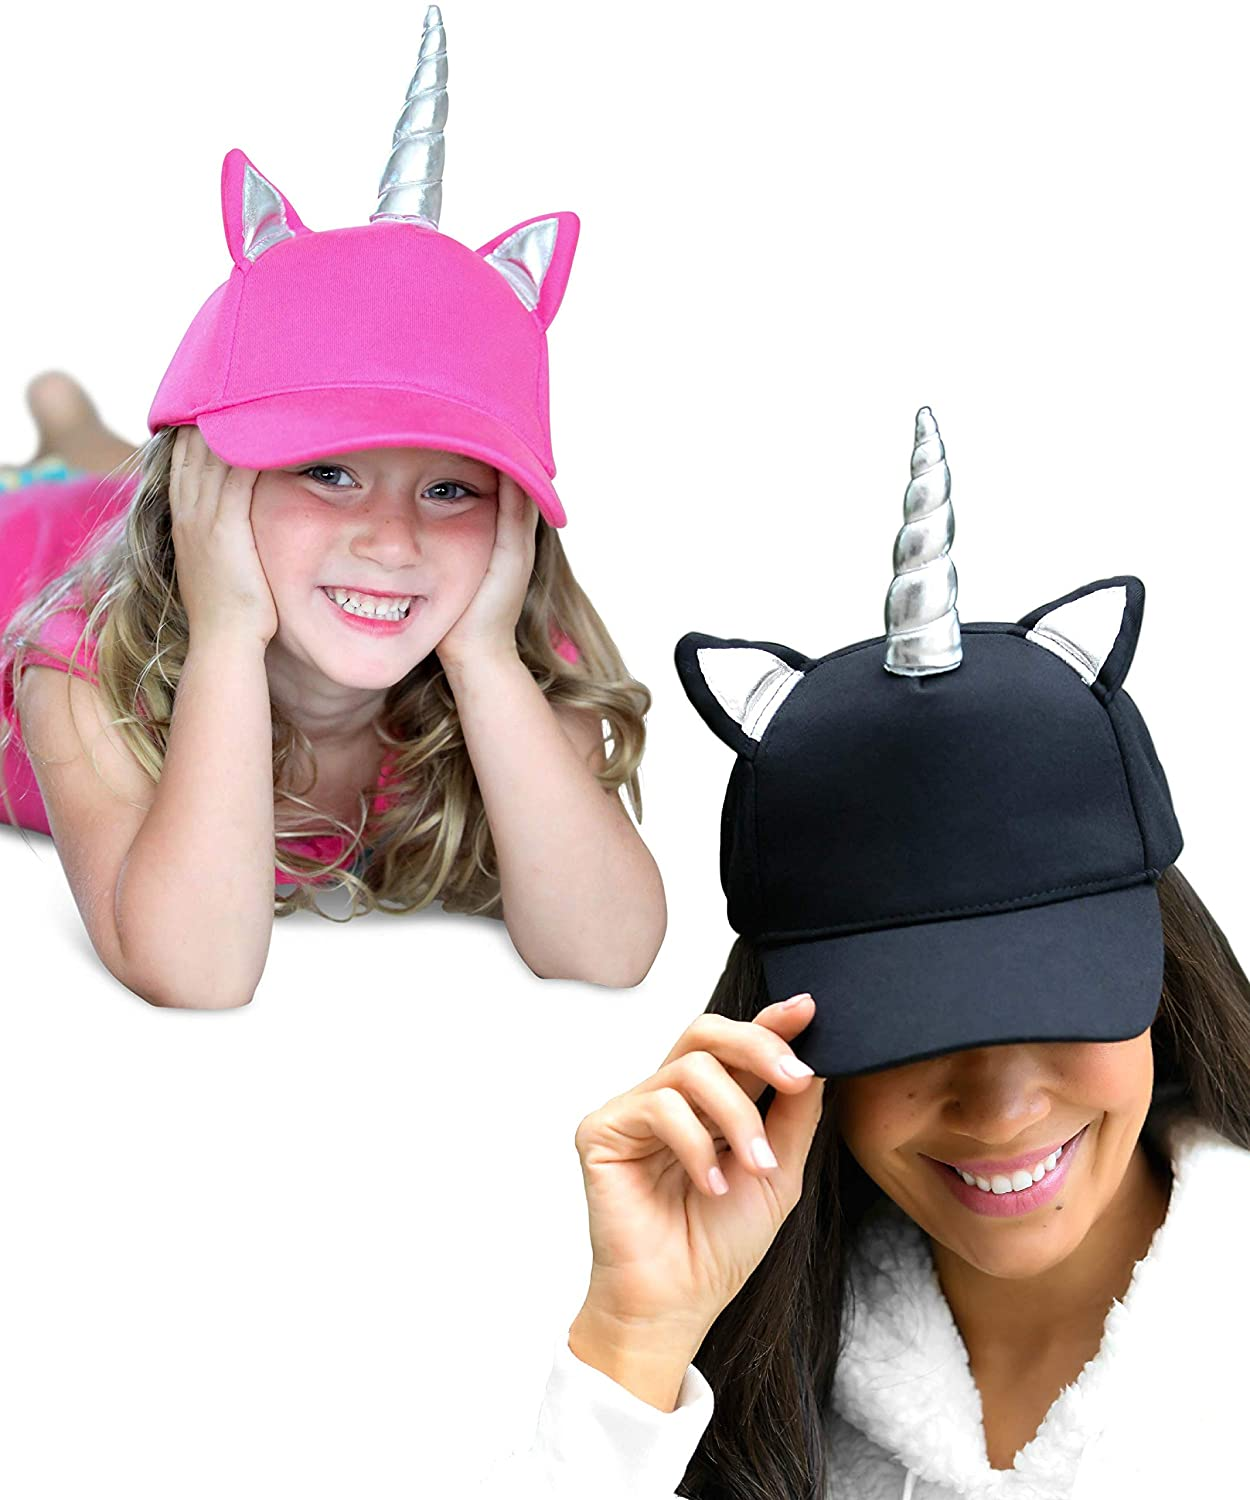 f3f34fbd8a8 Amazon.com  Baseball Cap for Girls - Kids Unicorn Hat for Women Teens Youth  - Unicorn Gifts for Easter   Spring  Clothing